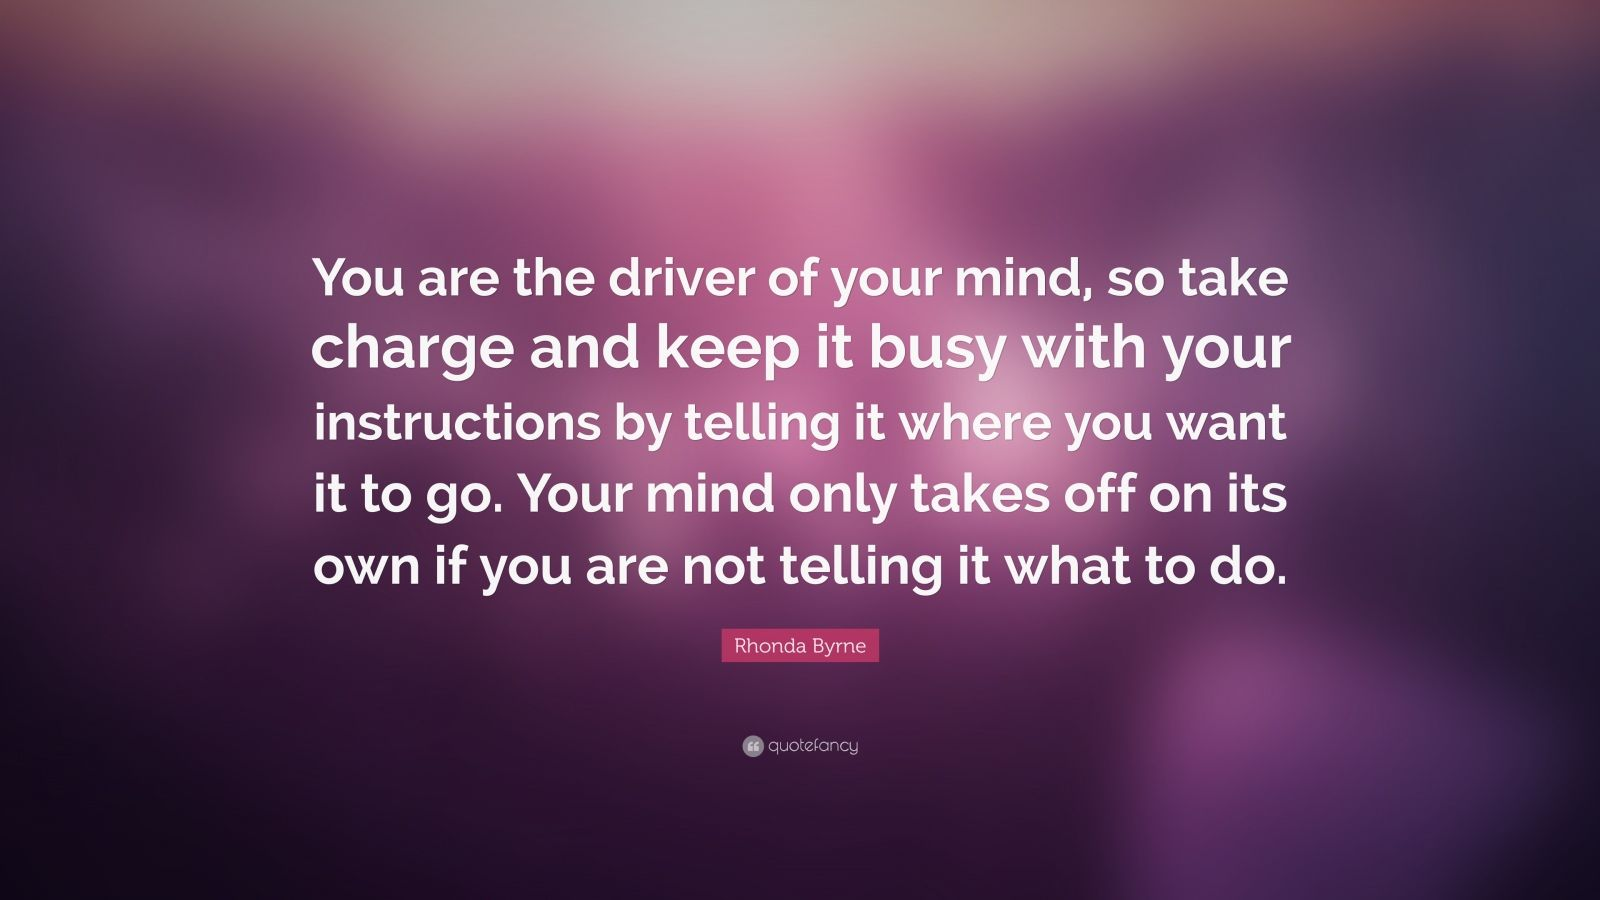 "Rhonda Byrne Quote: ""You are the driver of your mind, so take charge and keep it busy with your instructions by telling it where you want it to go. Your mind only takes off on its own if you are not telling it what to do."""